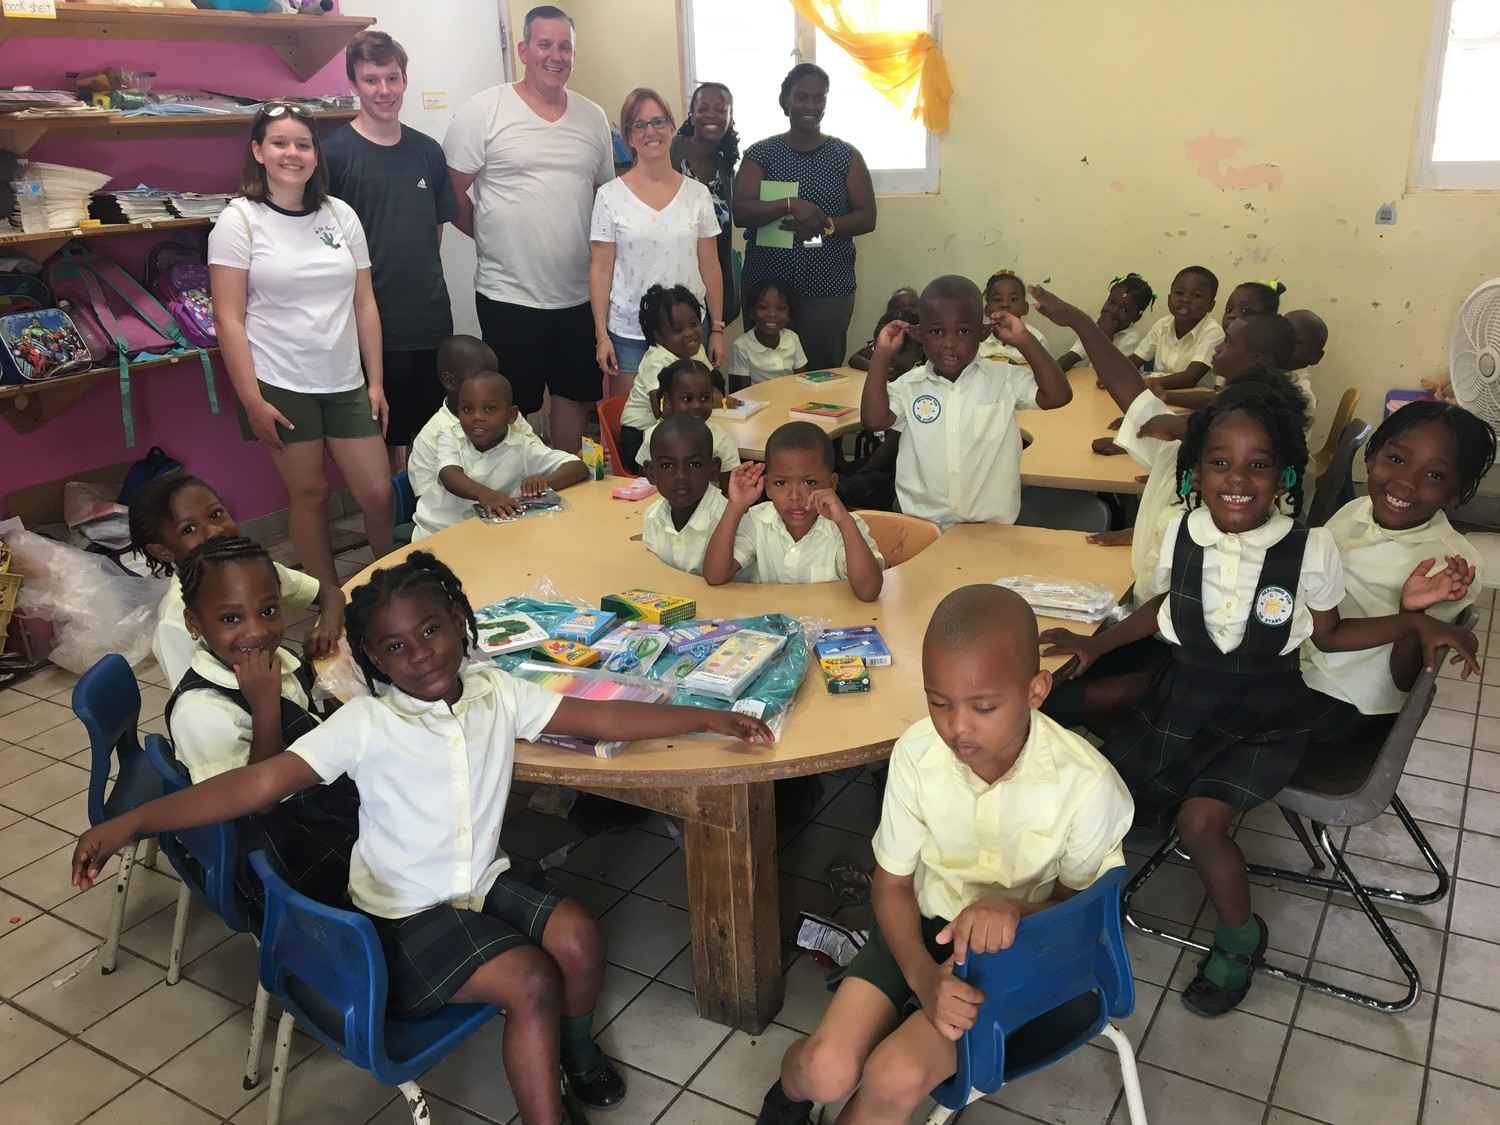 The Urban family, of Seaford, took several pieces of luggage filled with school supplies to Turks and Caicos in June to help local public schools, including the Enid Capron Primary School.